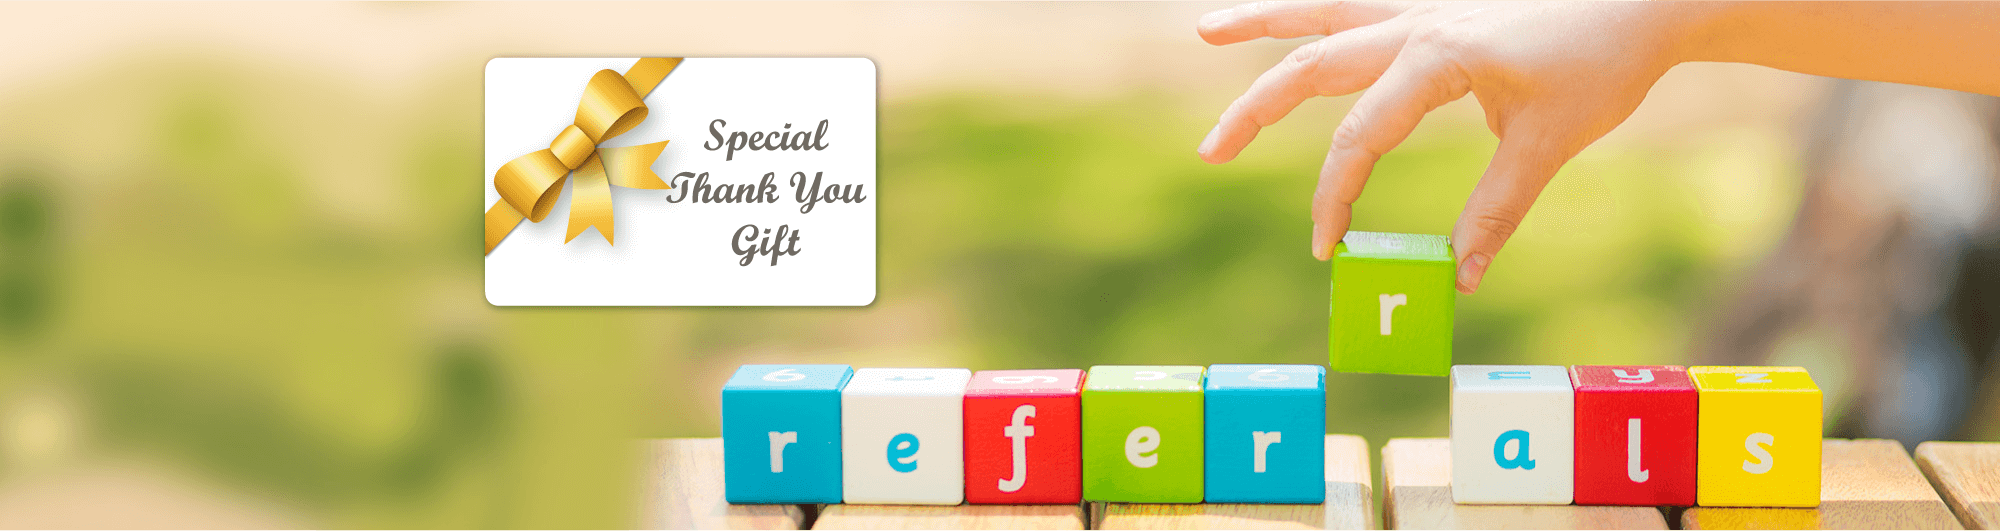 We Offer a Referral Program with a Special Thank-You Gift.